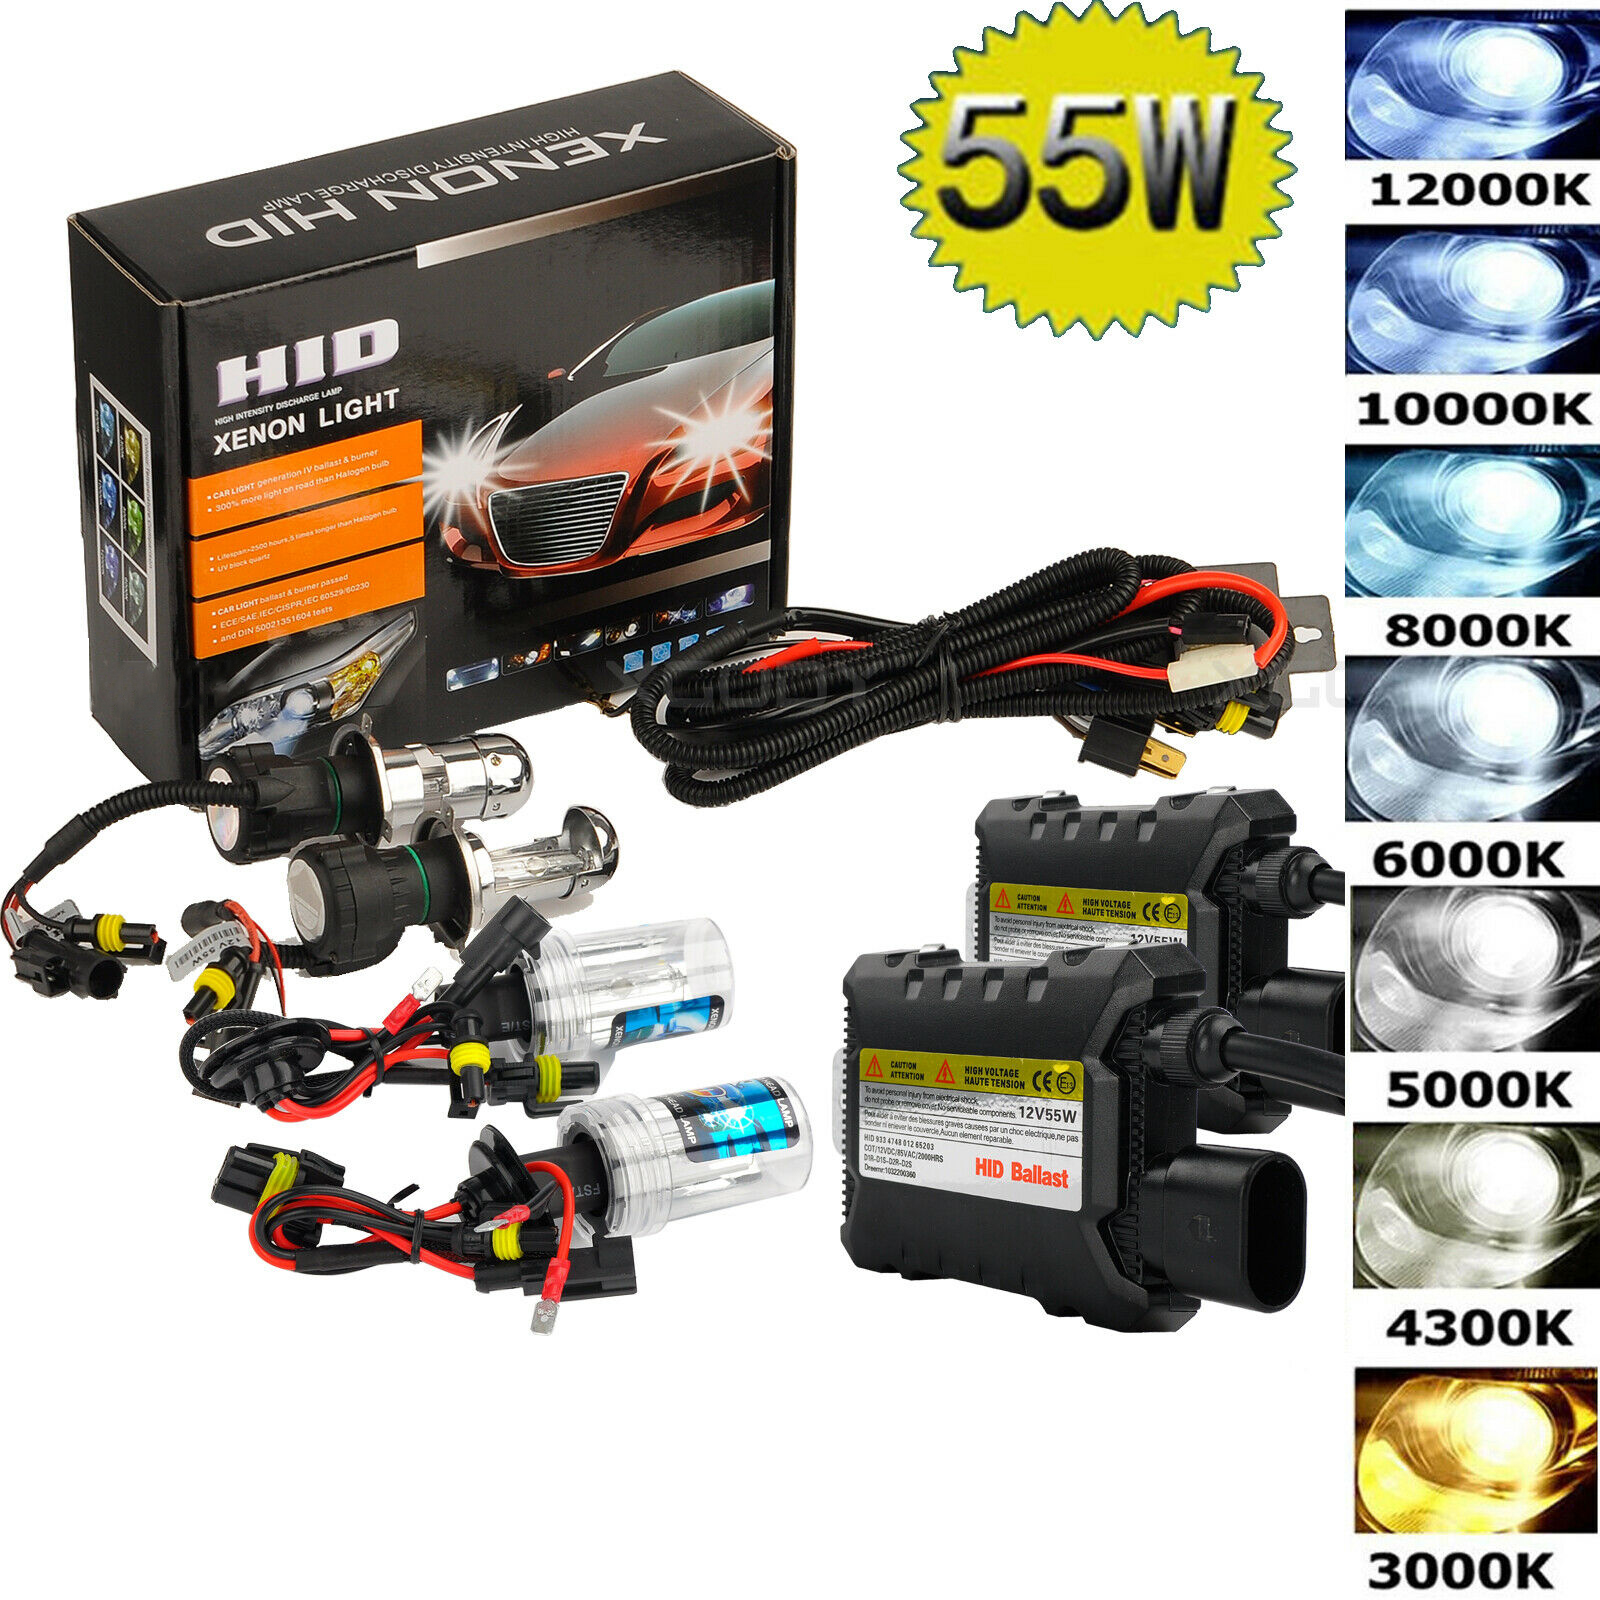 2pcs 55W Car HID <font><b>LED</b></font> Headlight <font><b>6000K</b></font>/8000K/10000K/12000K Conversion KIT <font><b>Bulbs</b></font> H1 <font><b>H3</b></font> H4 H7 H11 9005/HB3 9006/HB4 880/881 H13 H8 image